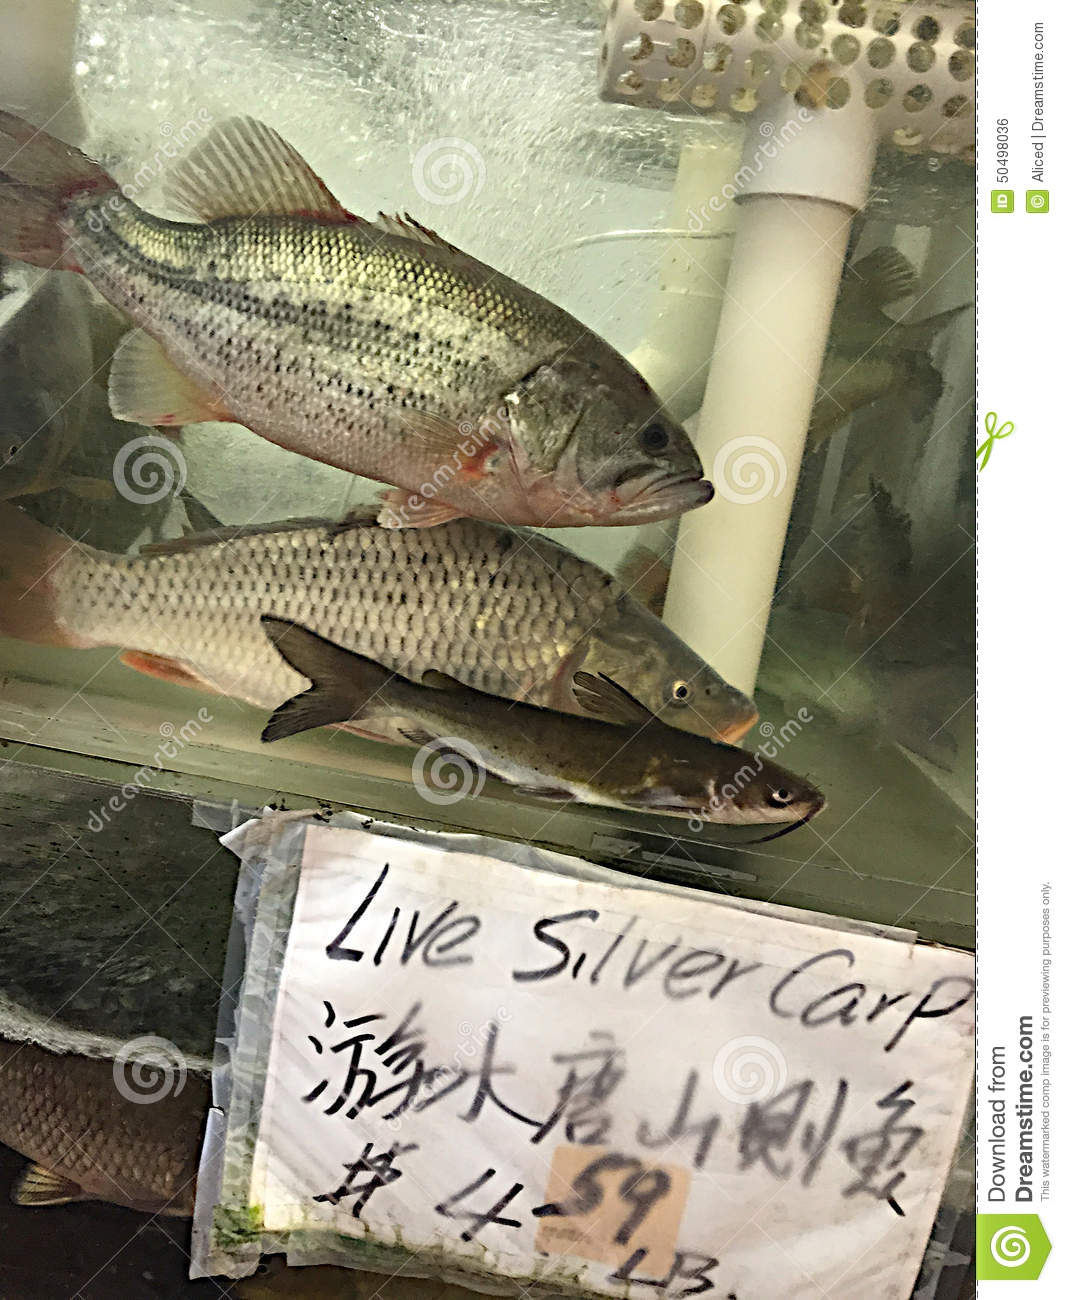 Asian Stock Markets Live Update Live Fish For Sale Stock Photo Image Of Characters Words